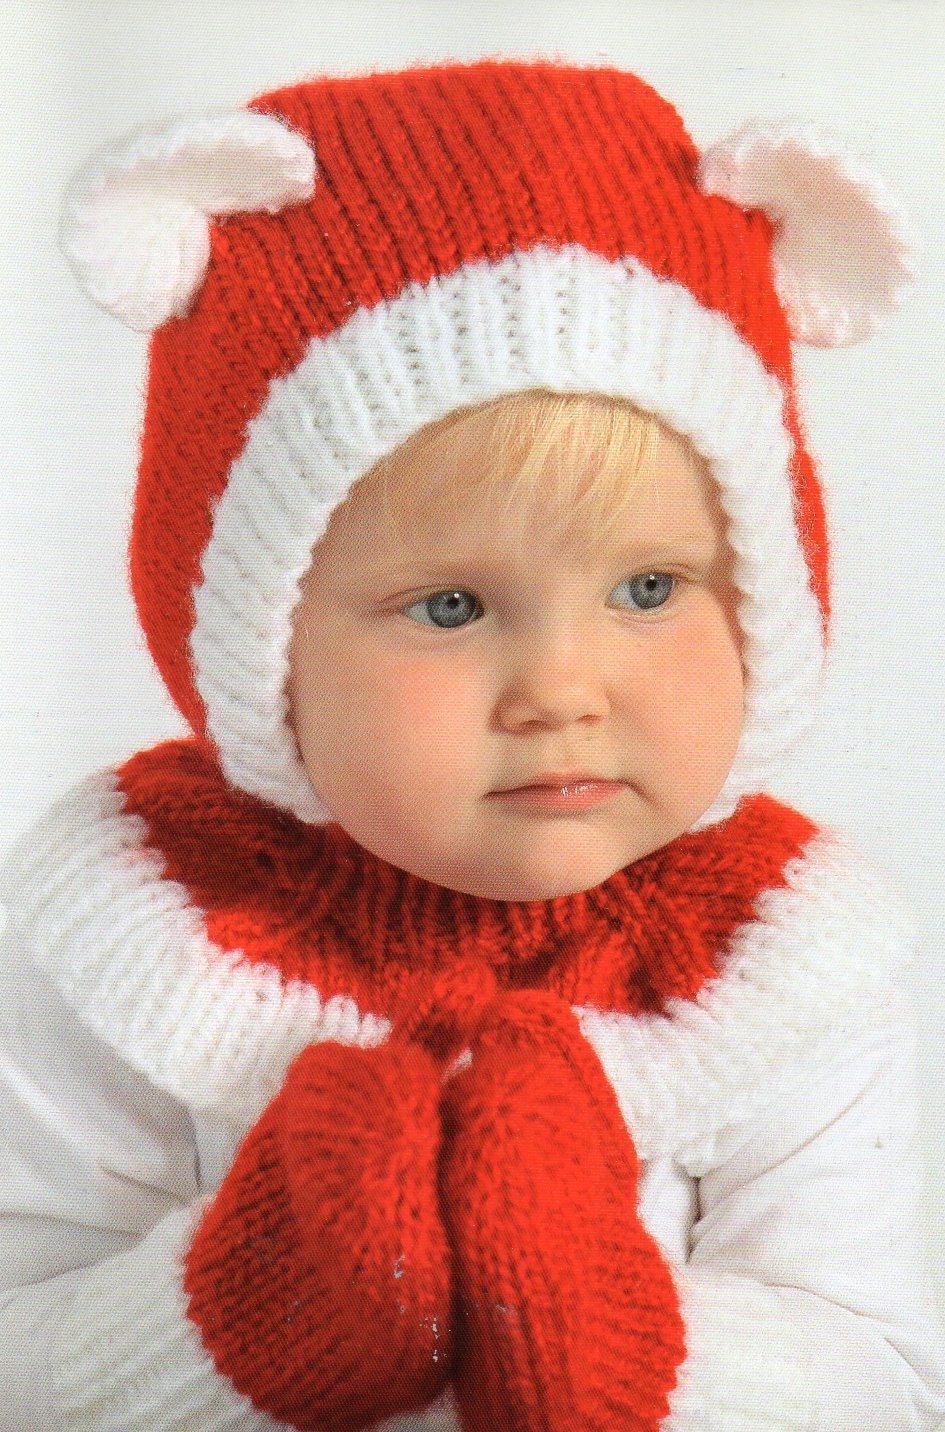 Santa claus bear hat and mittens knitting pattern baby child zoom bankloansurffo Choice Image